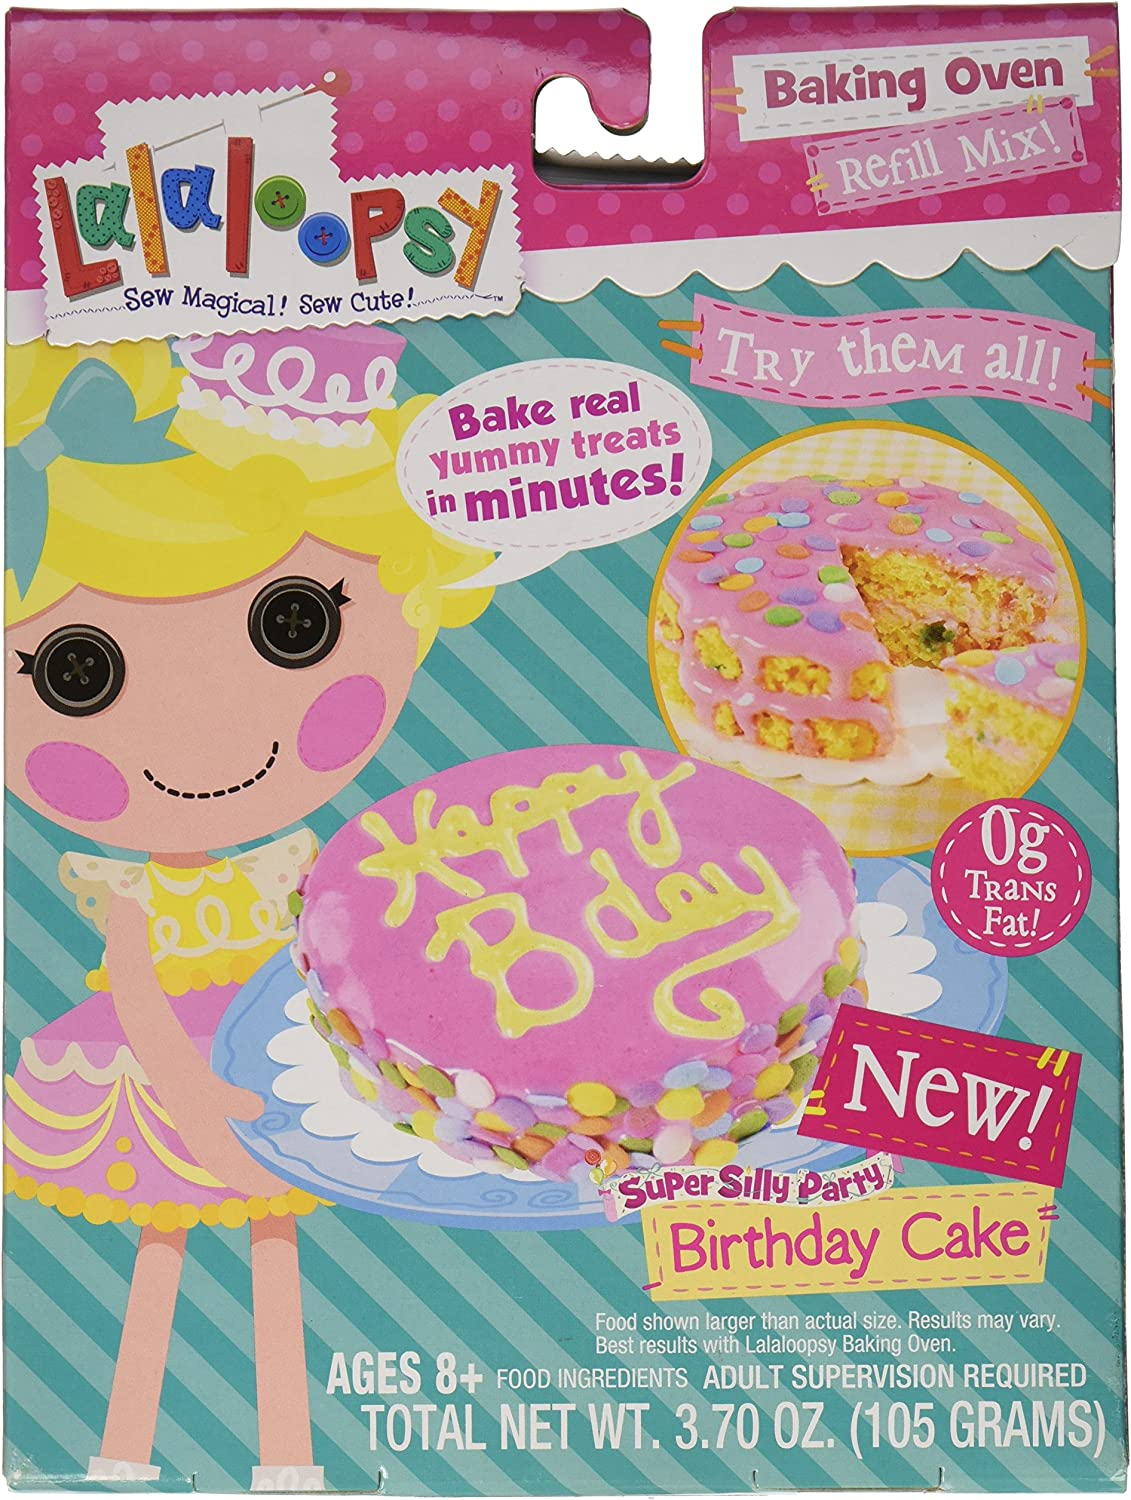 Lalaloopsy Baking Oven Mix Confetti Pink Very popular Cake Brand Cheap Sale Venue Hot with Frosting